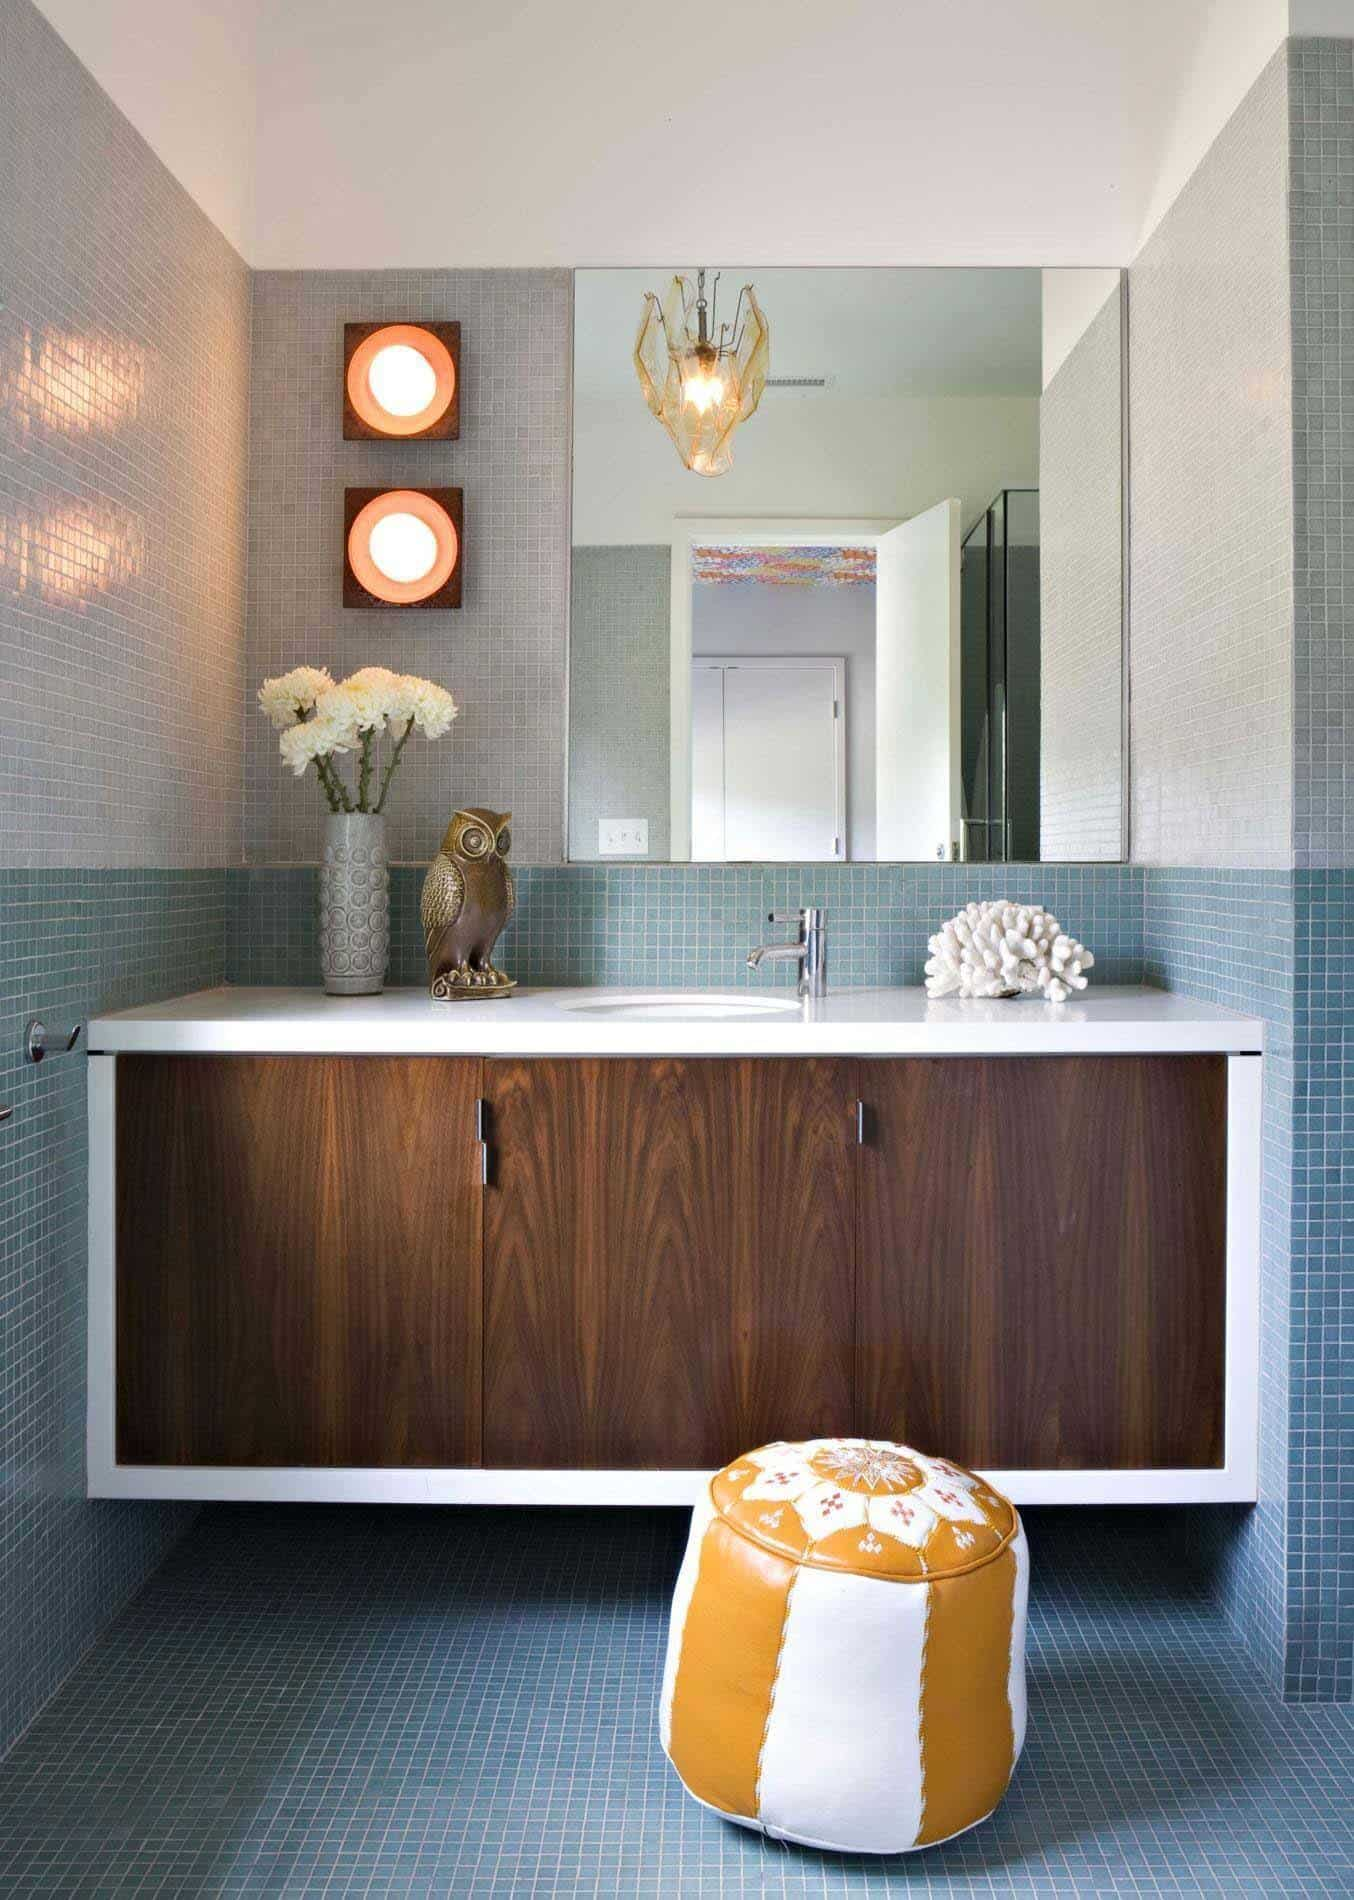 4 Awesome Mid Century modern bathroom Ideas you should see this Year